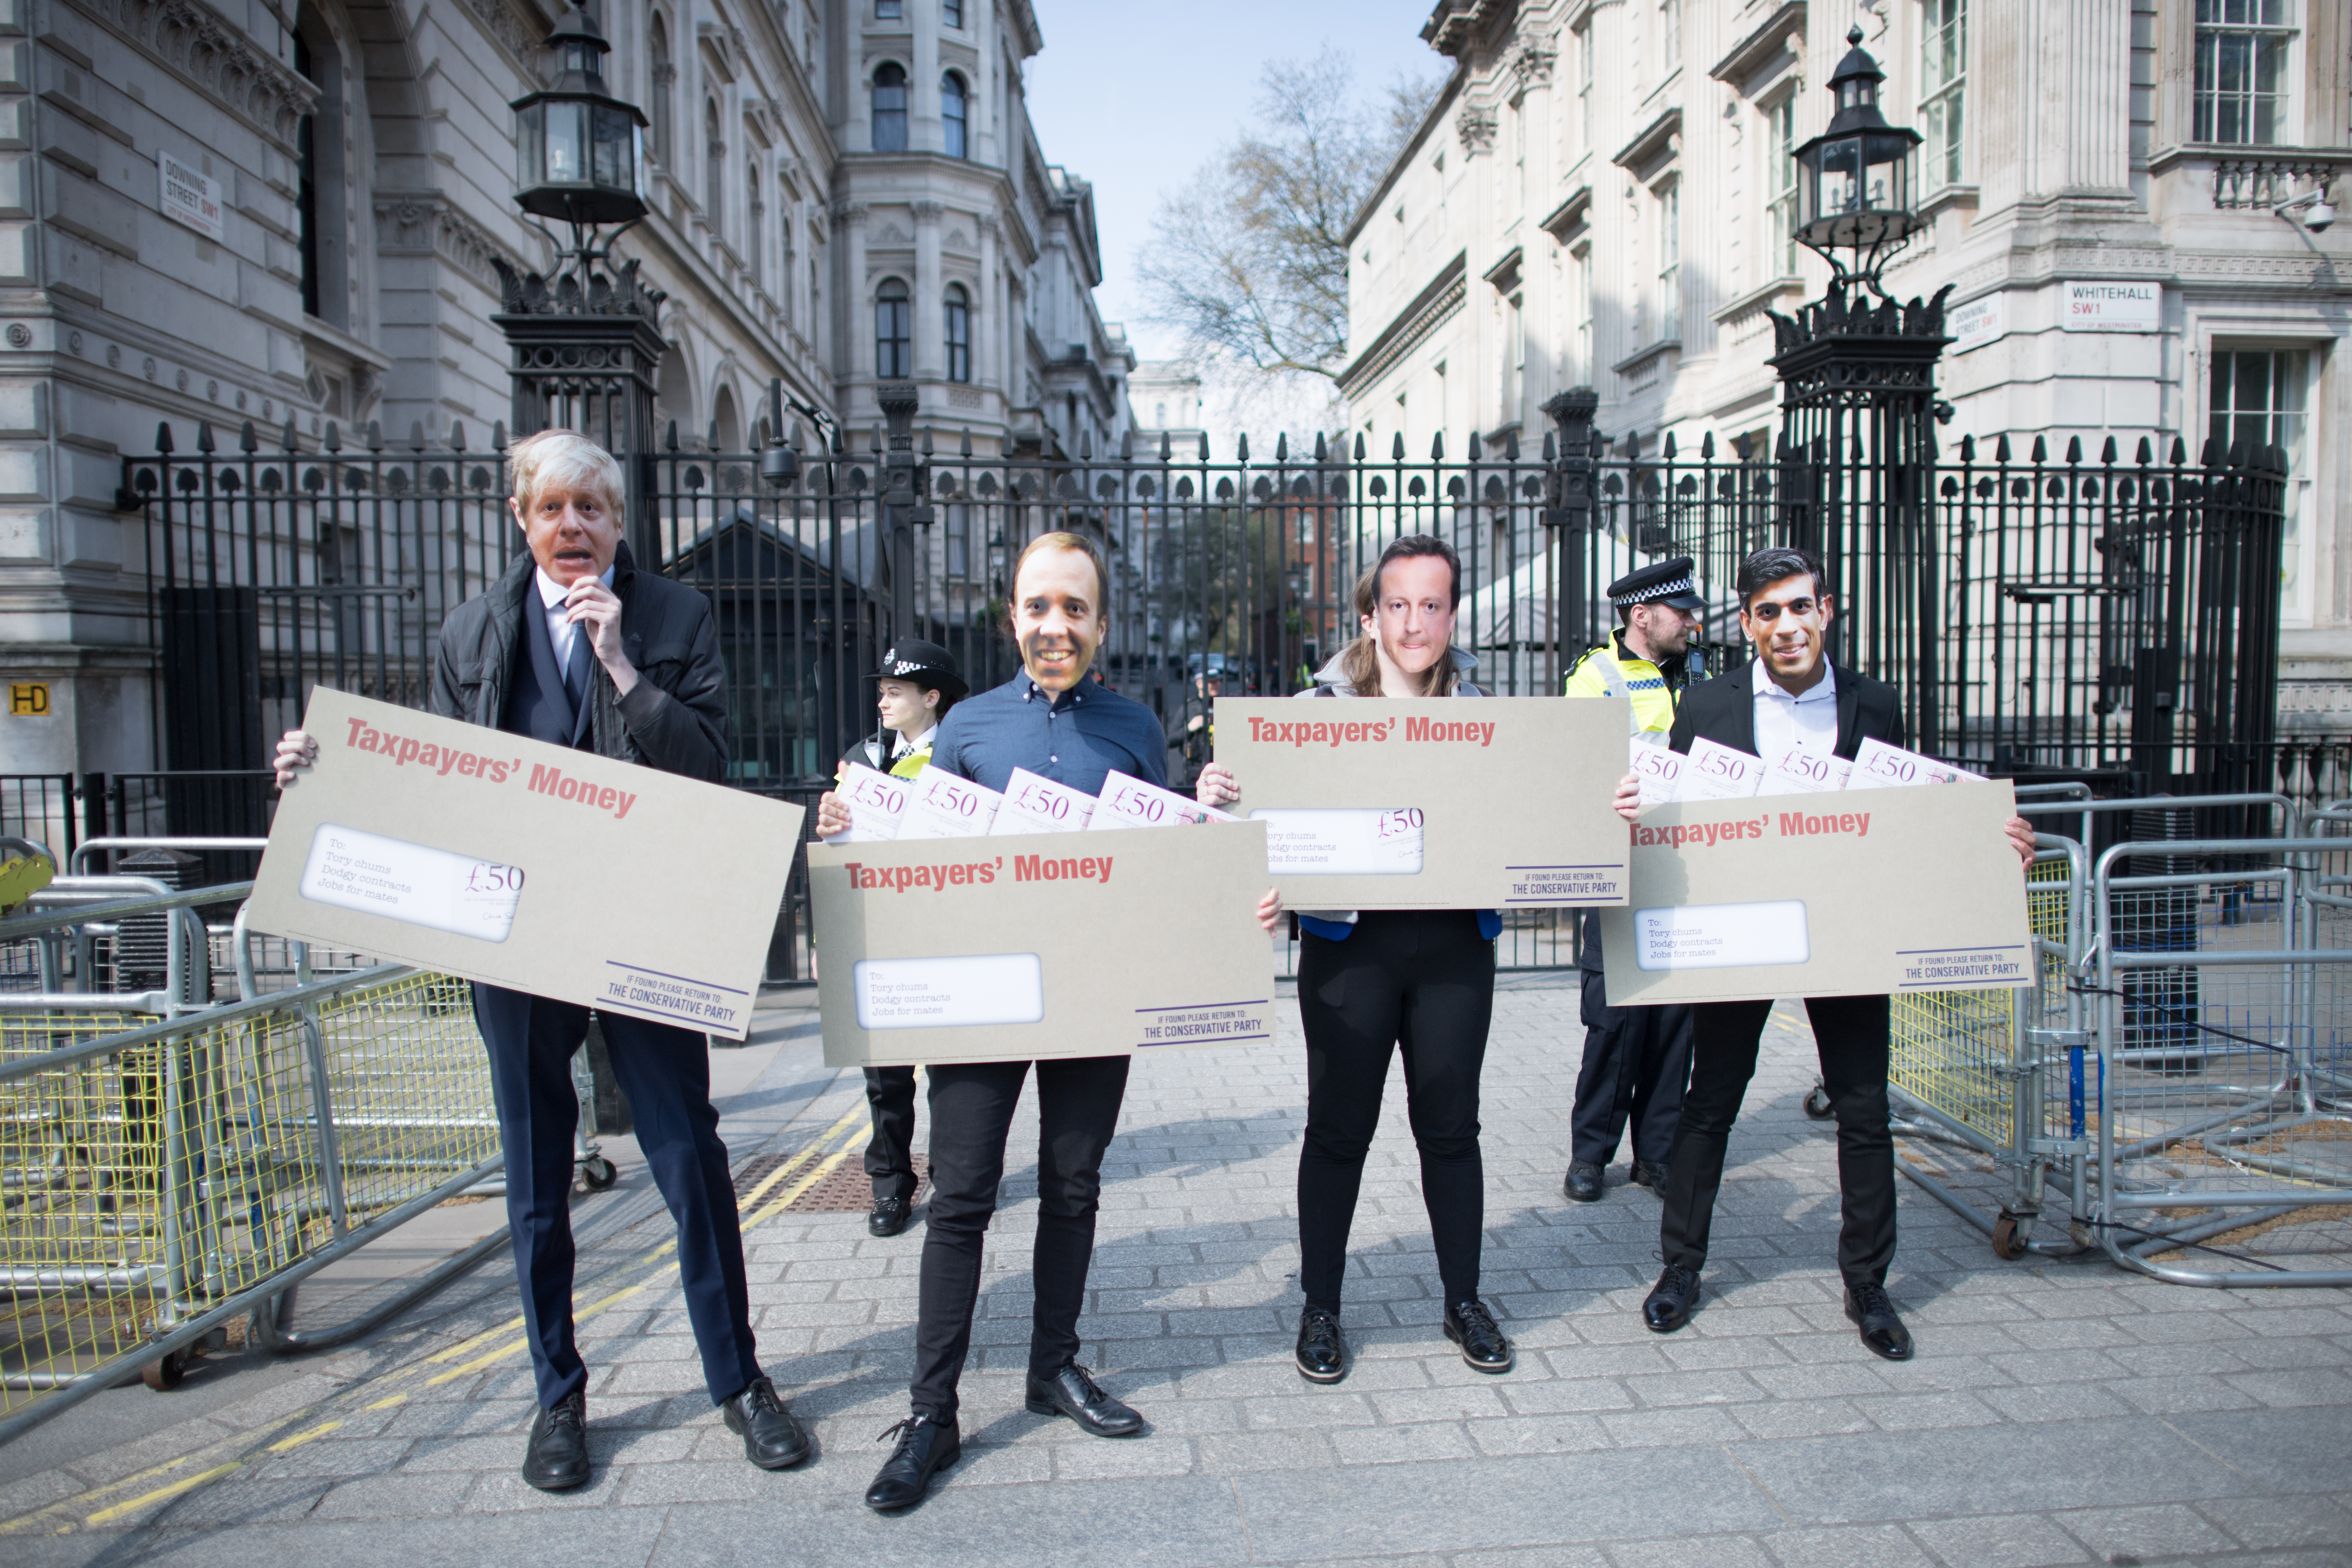 "<p>Labour activists wearing face masks, depicting Prime Minister Boris Johnson, Chancellor Rishi Sunak, Health Secretary Matt Hancock and former prime minister David Cameron, carry oversized envelopes addressed to ""Tory chums, Dodgy contracts, Jobs for mates"" as the Labour party highlight Tory sleaze and cronyism outside Downing Street, London. Picture date: Wednesday April 21, 2021.</p>"